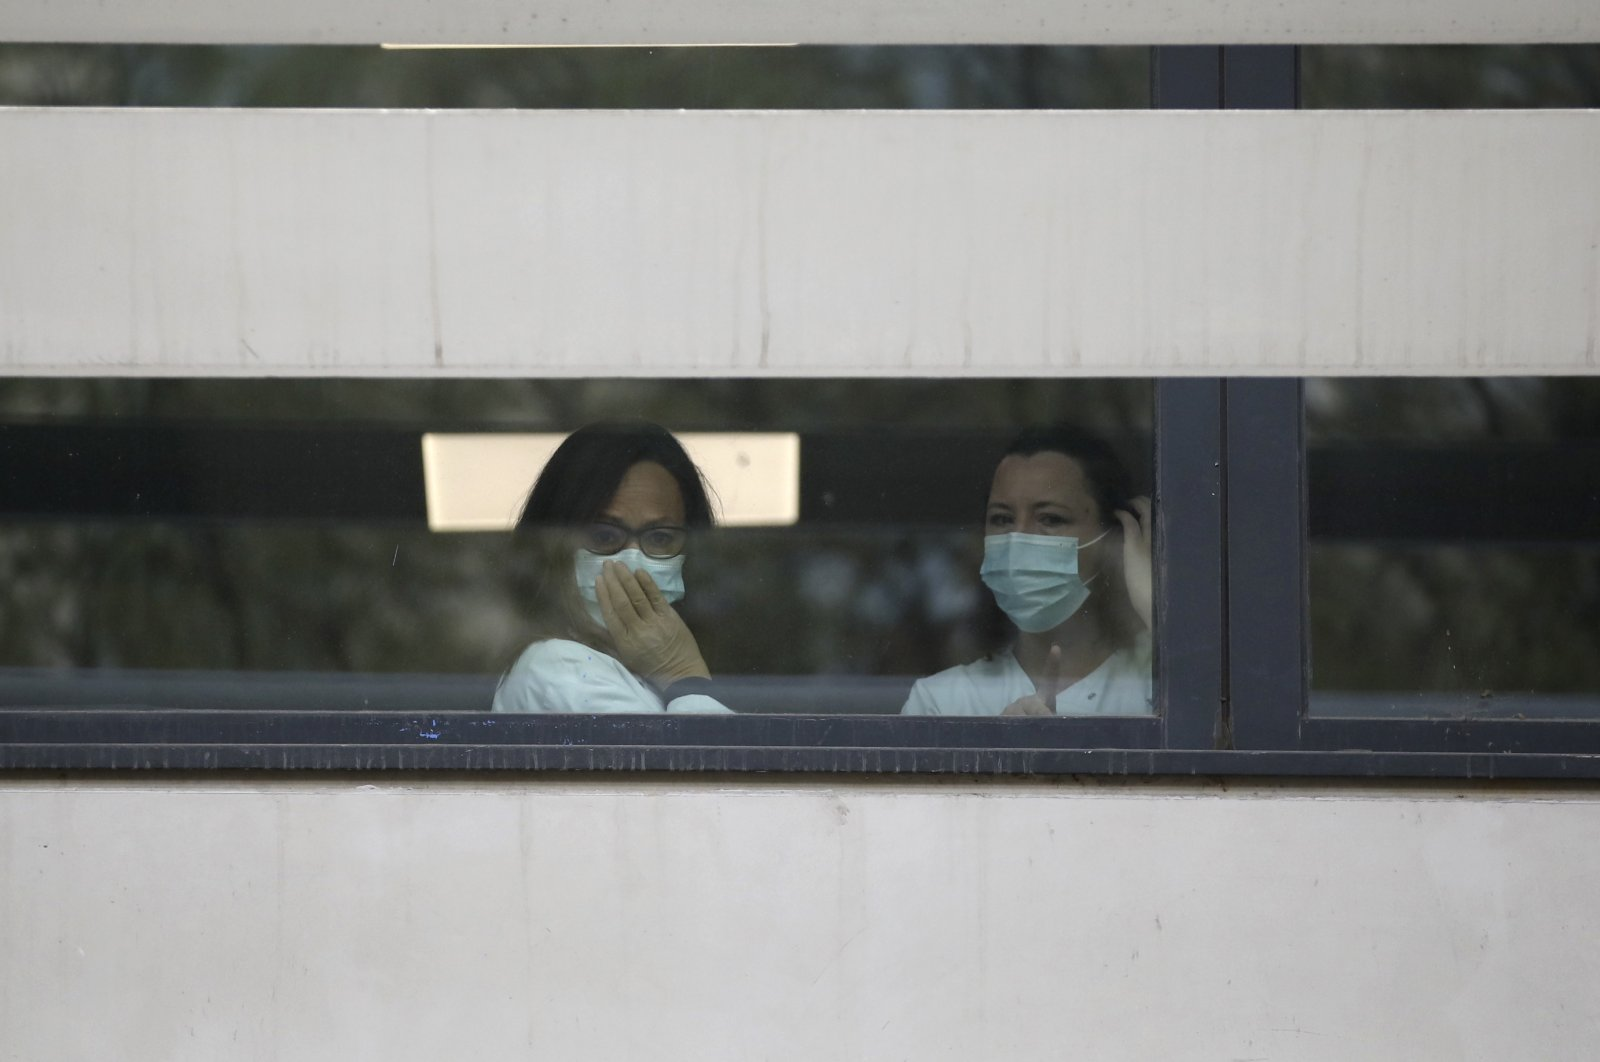 Medical staff watch people waiting in line to get a coronavirus test outside the La Timone hospital, Marseille, Monday, March 23, 2020. (AP Photo)